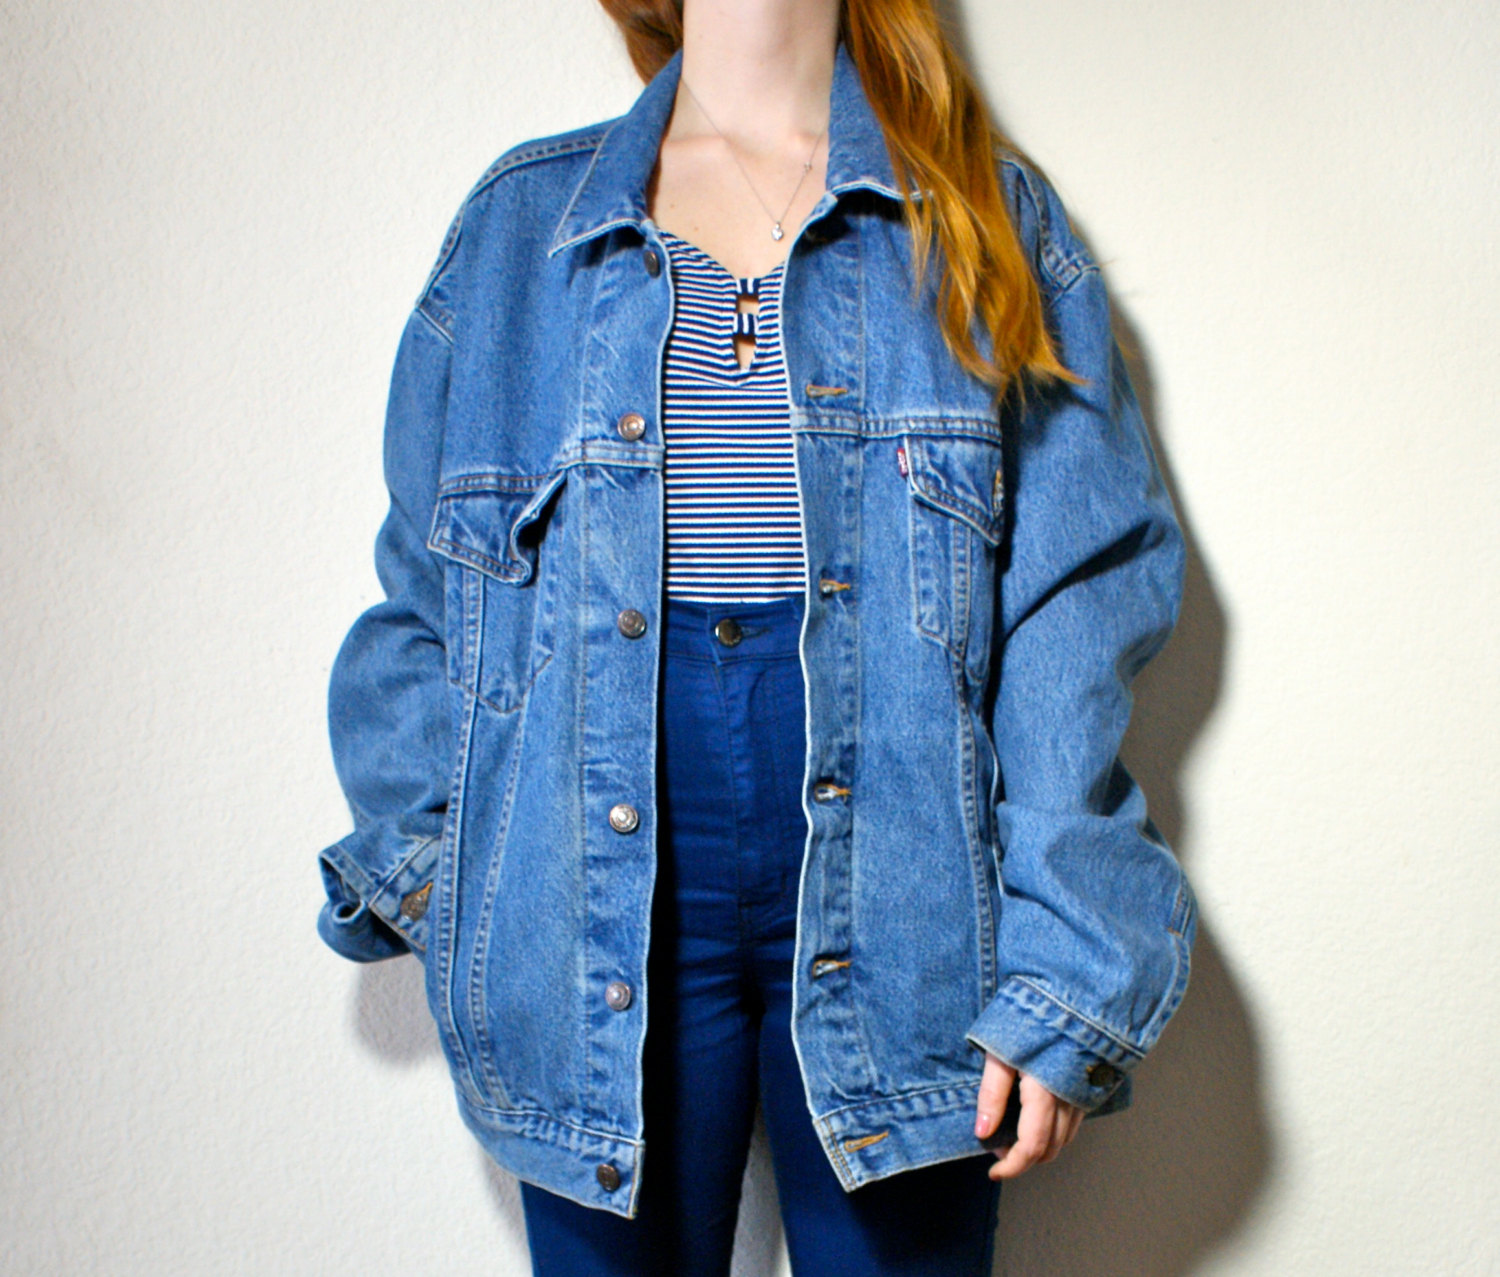 Oversized jean jacket cheap – Novelties of modern fashion photo blog